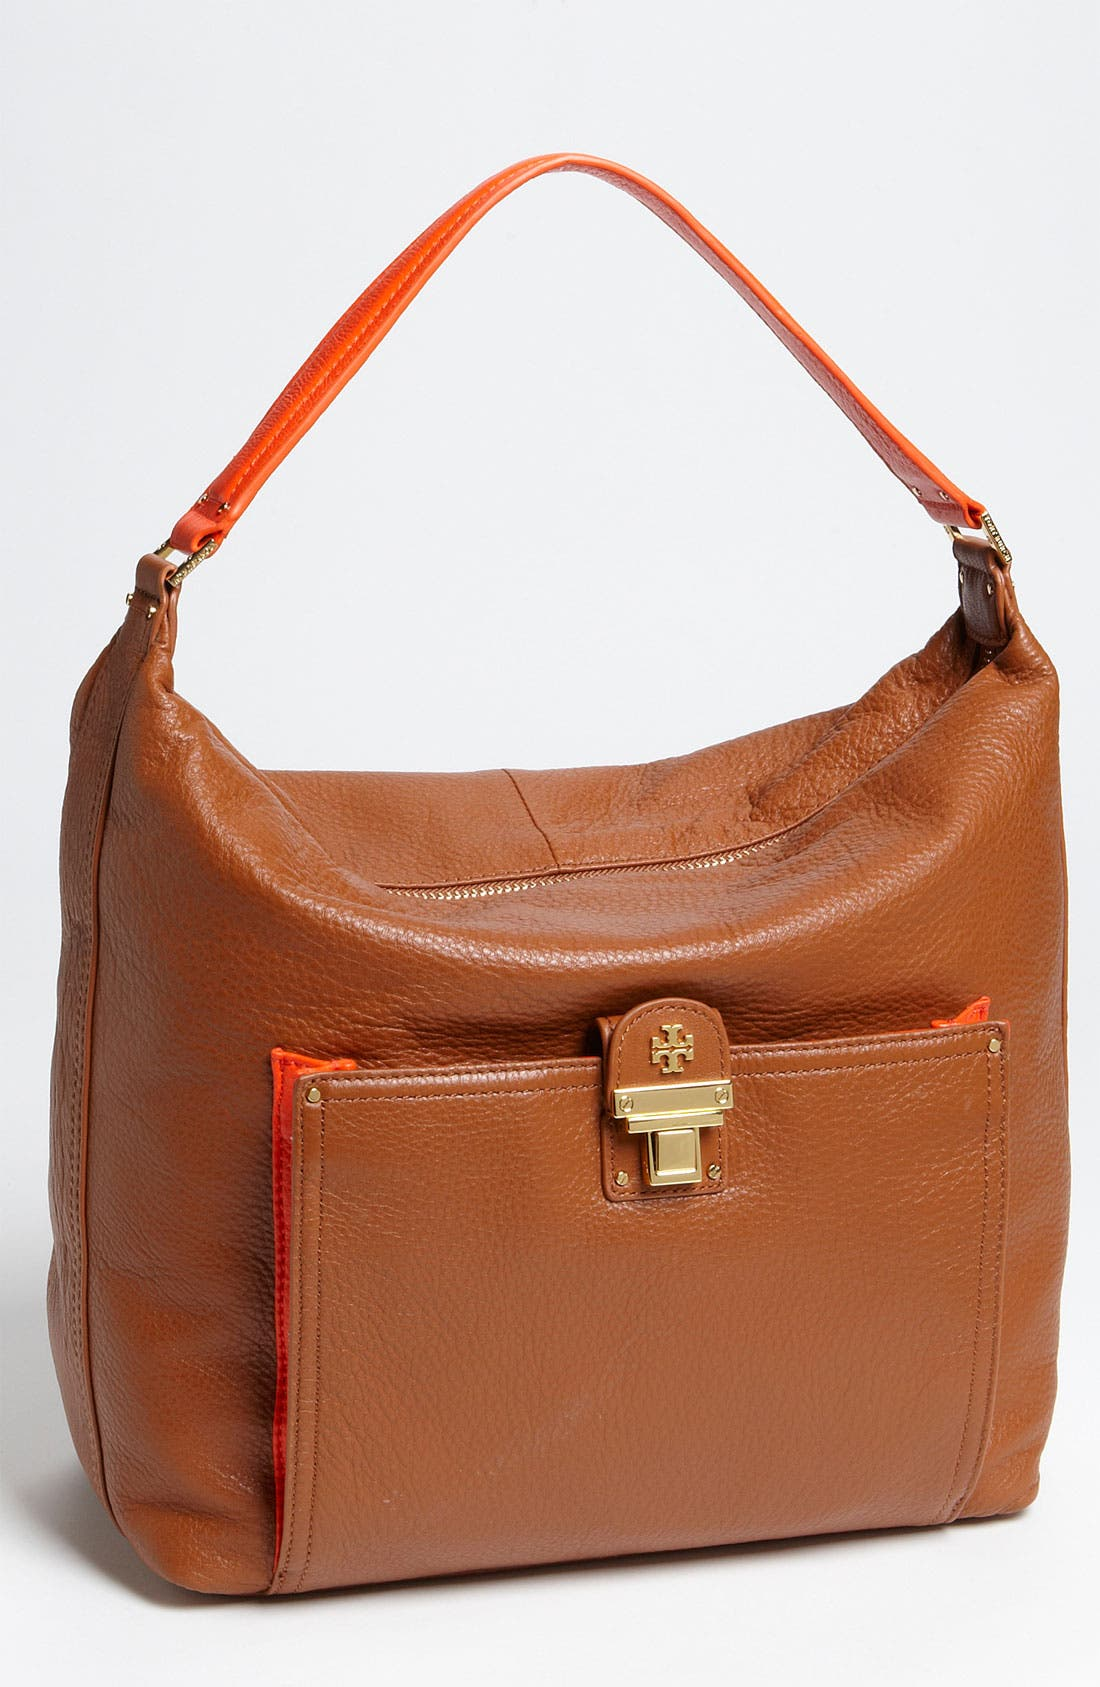 Main Image - Tory Burch 'Rachael' Bucket Hobo